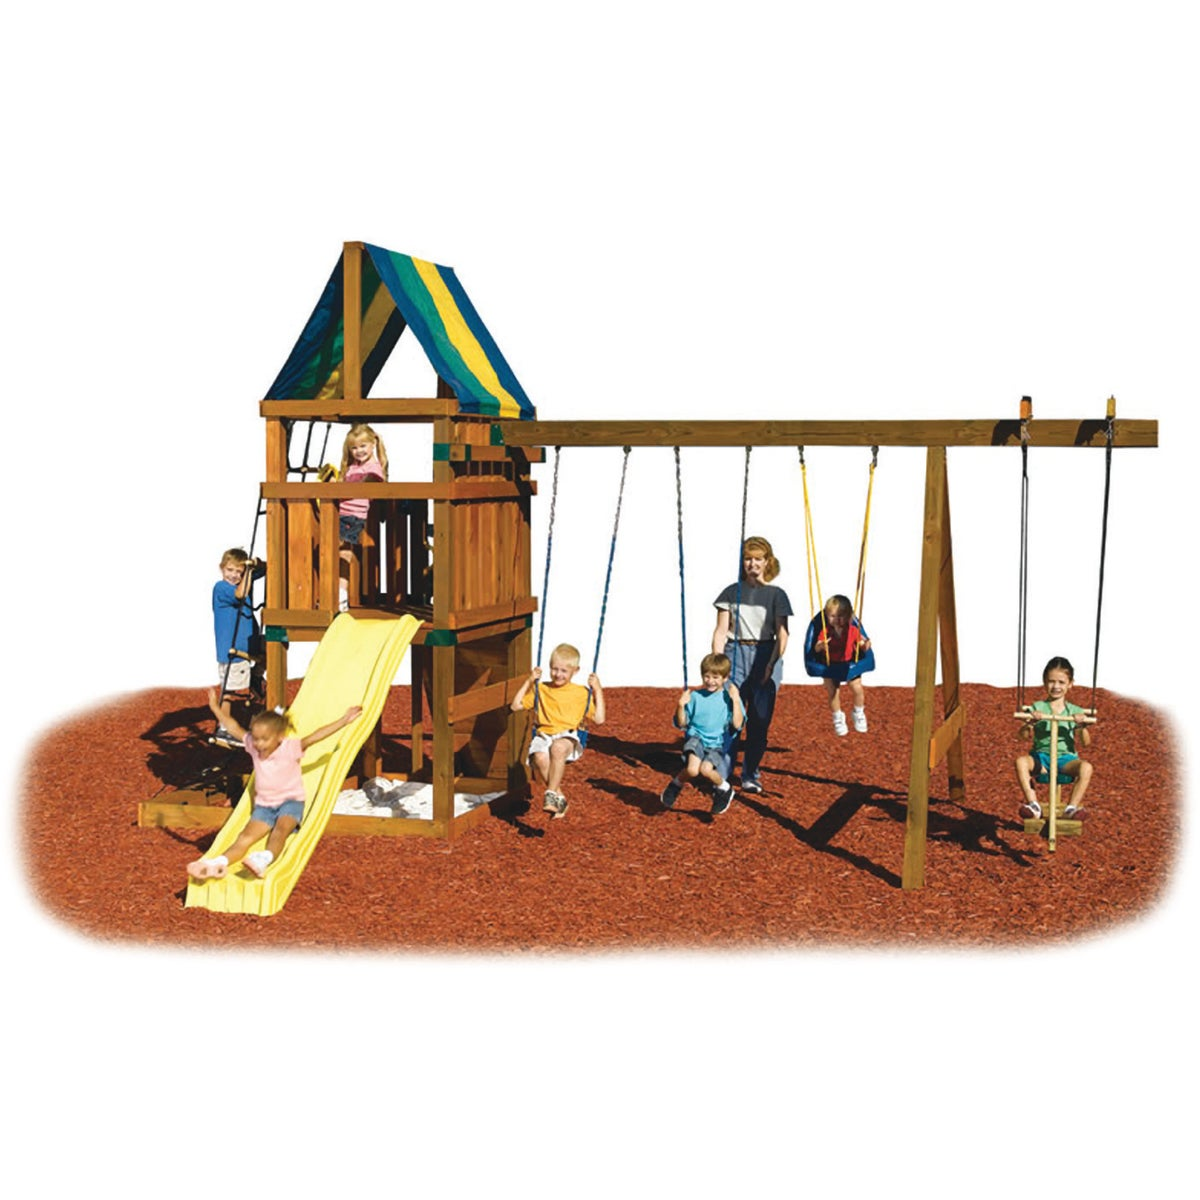 ALPINE CUSTOM SWING SET - NE5007 by Swing N Slide Corp